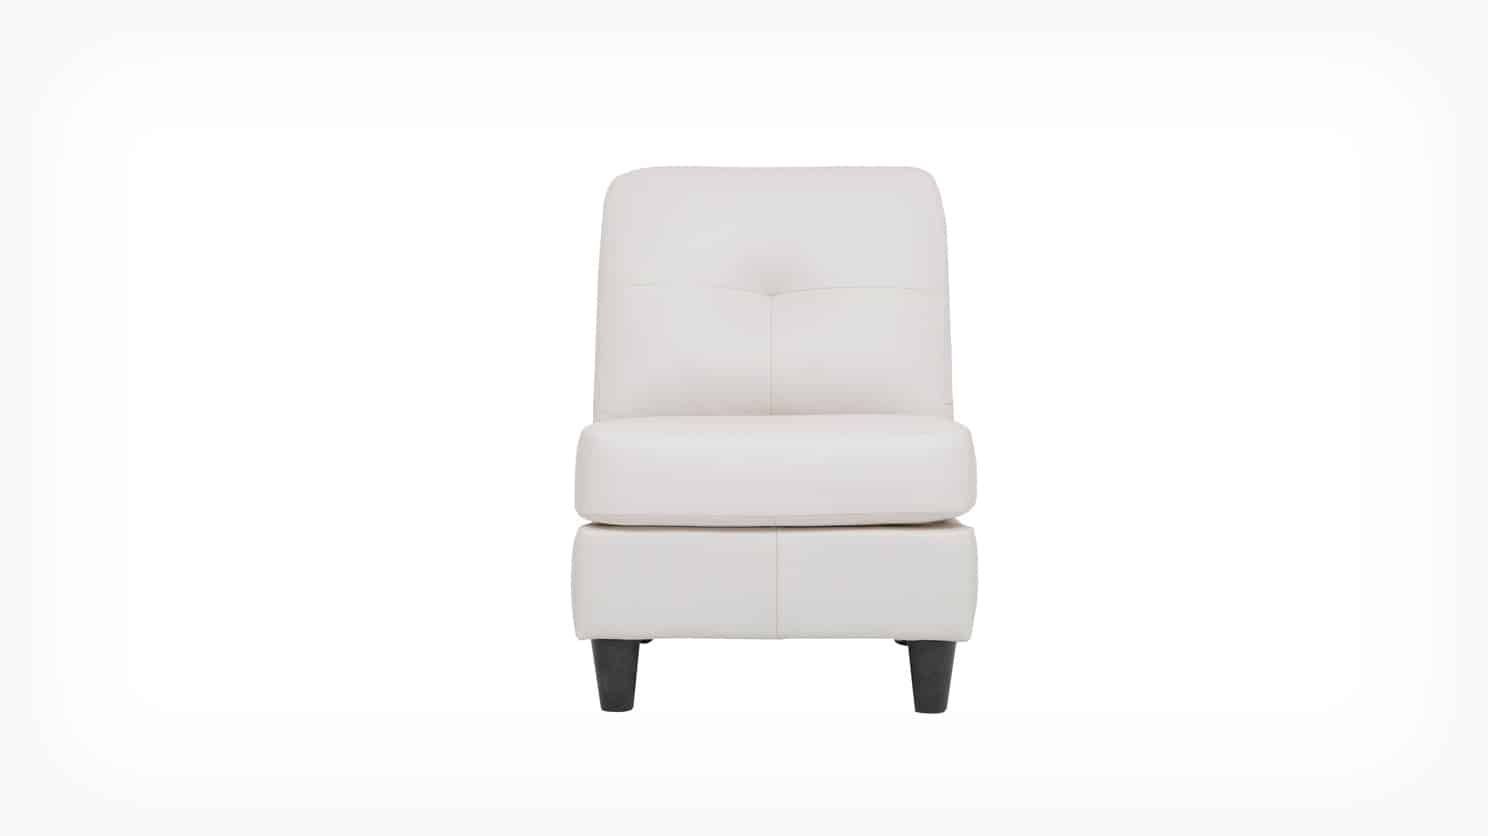 77480 10 1 chairs solo armless chair disco leather front